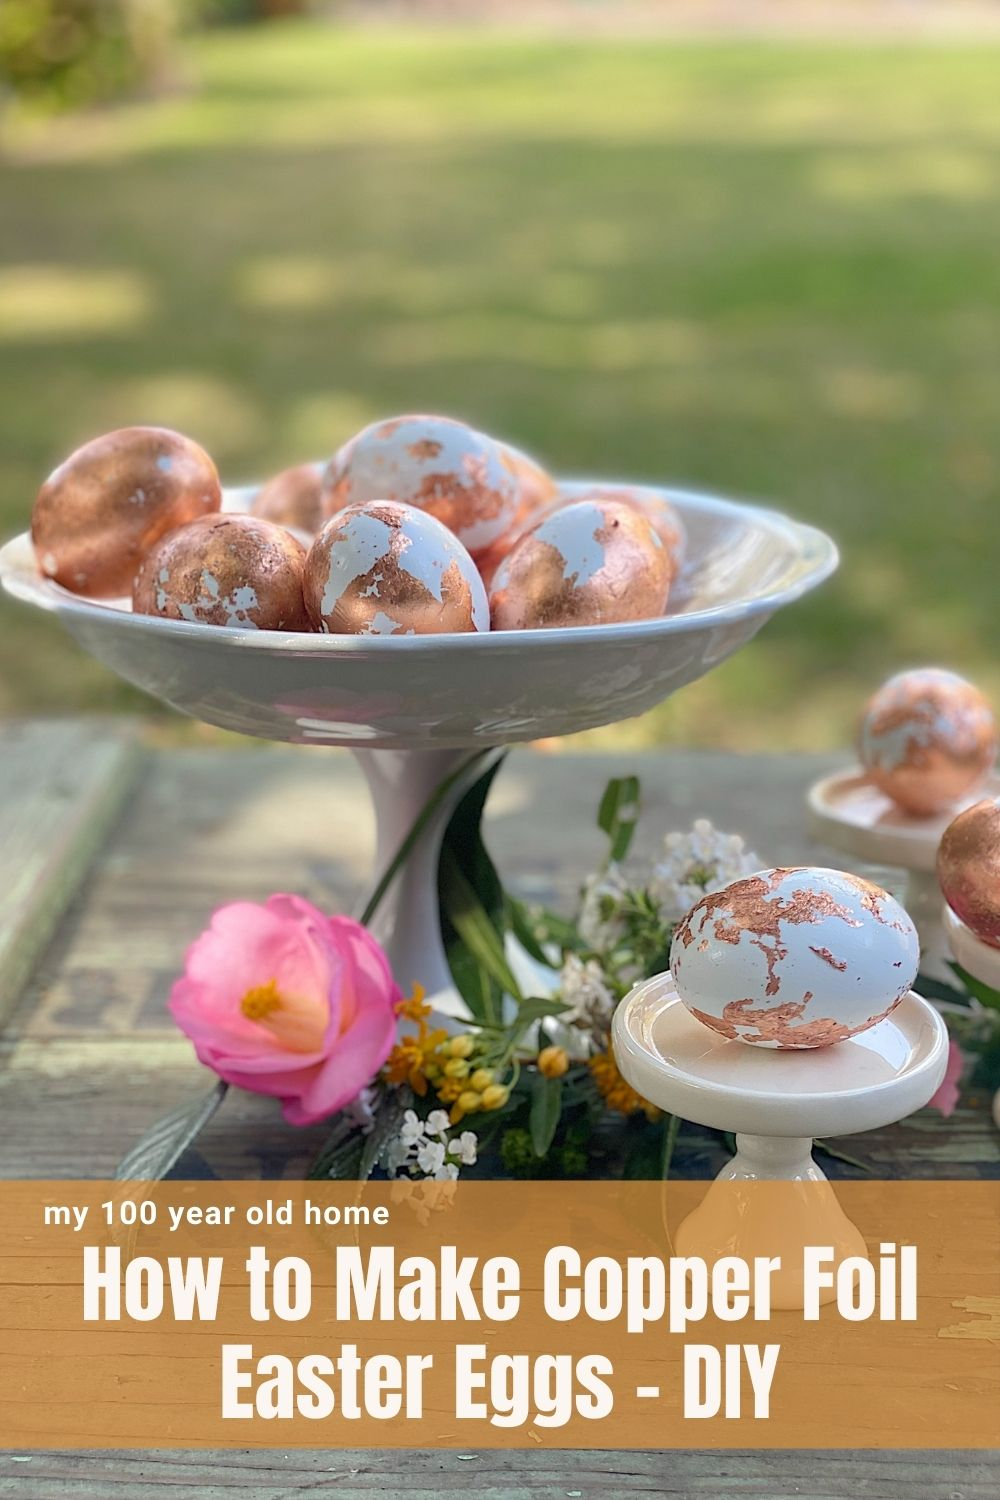 Easter is around the corner and I am sharing one of my favorite ideas for Easter eggs. I loved making these copper foil Easter eggs DIY.